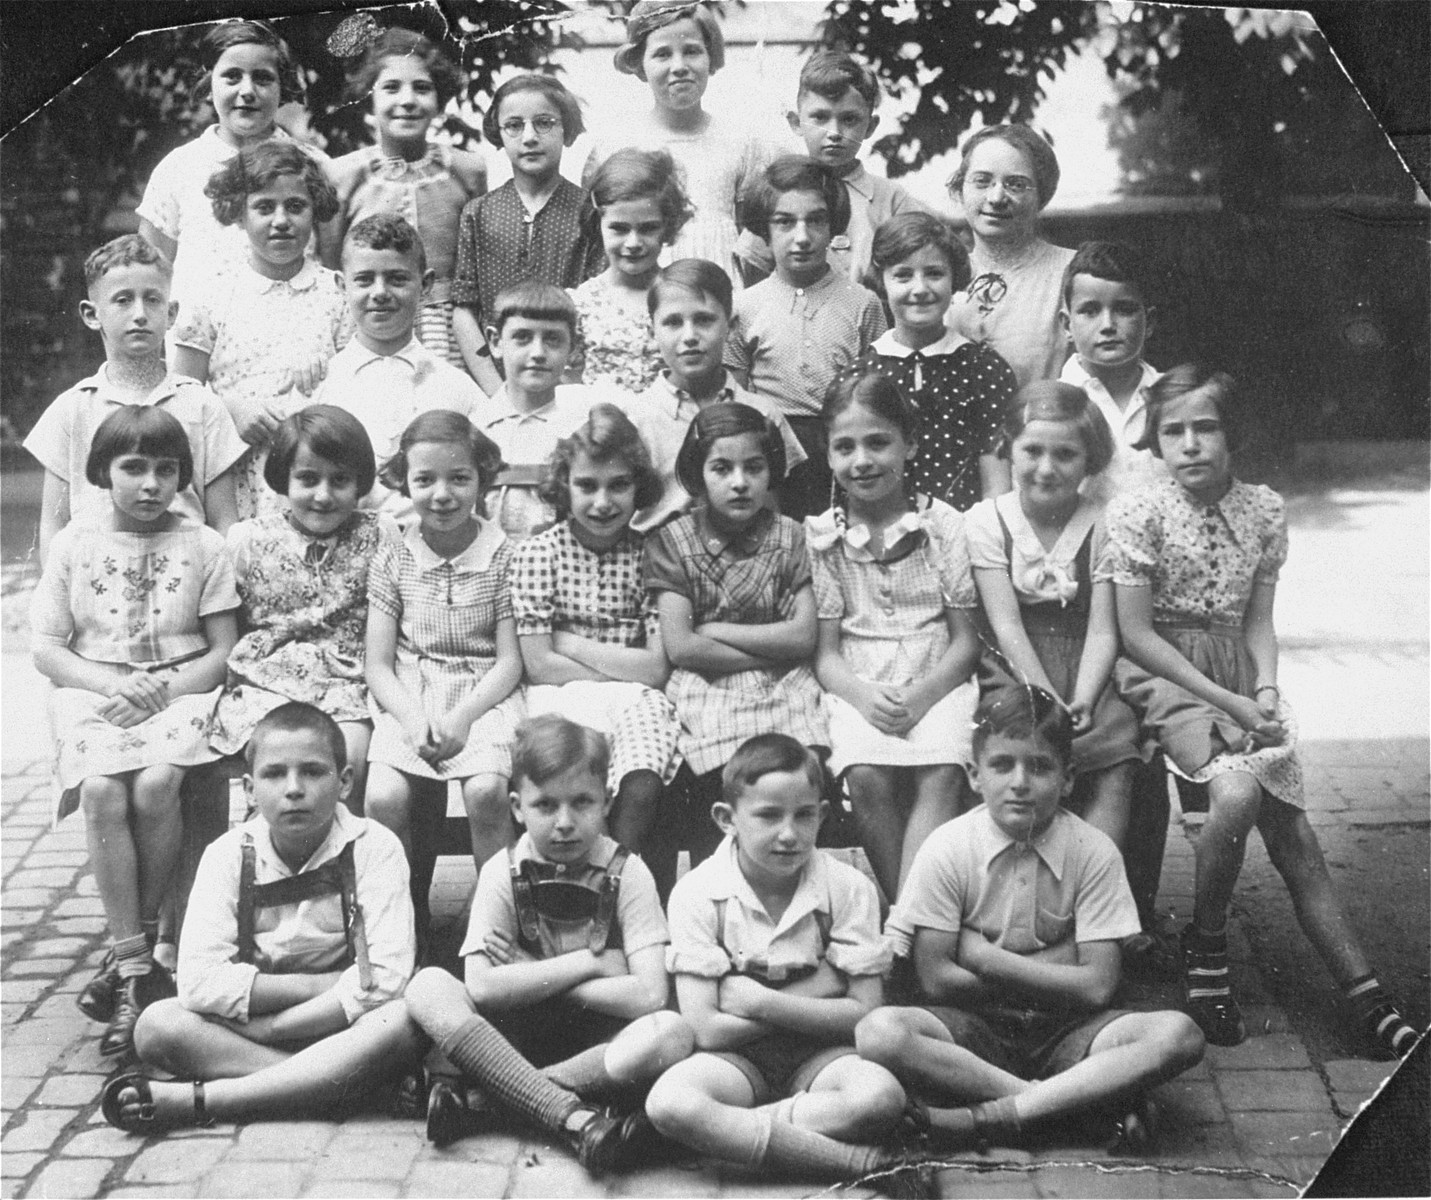 Group portrait of pupils in the third grade at a Jewish school in Karlsruhe, Germany that had been relocated to one floor at the 'Holzbodengymnasium' a special school for mentally disabled children.   Among those pictured is the teacher, Caecilie Schweizer.